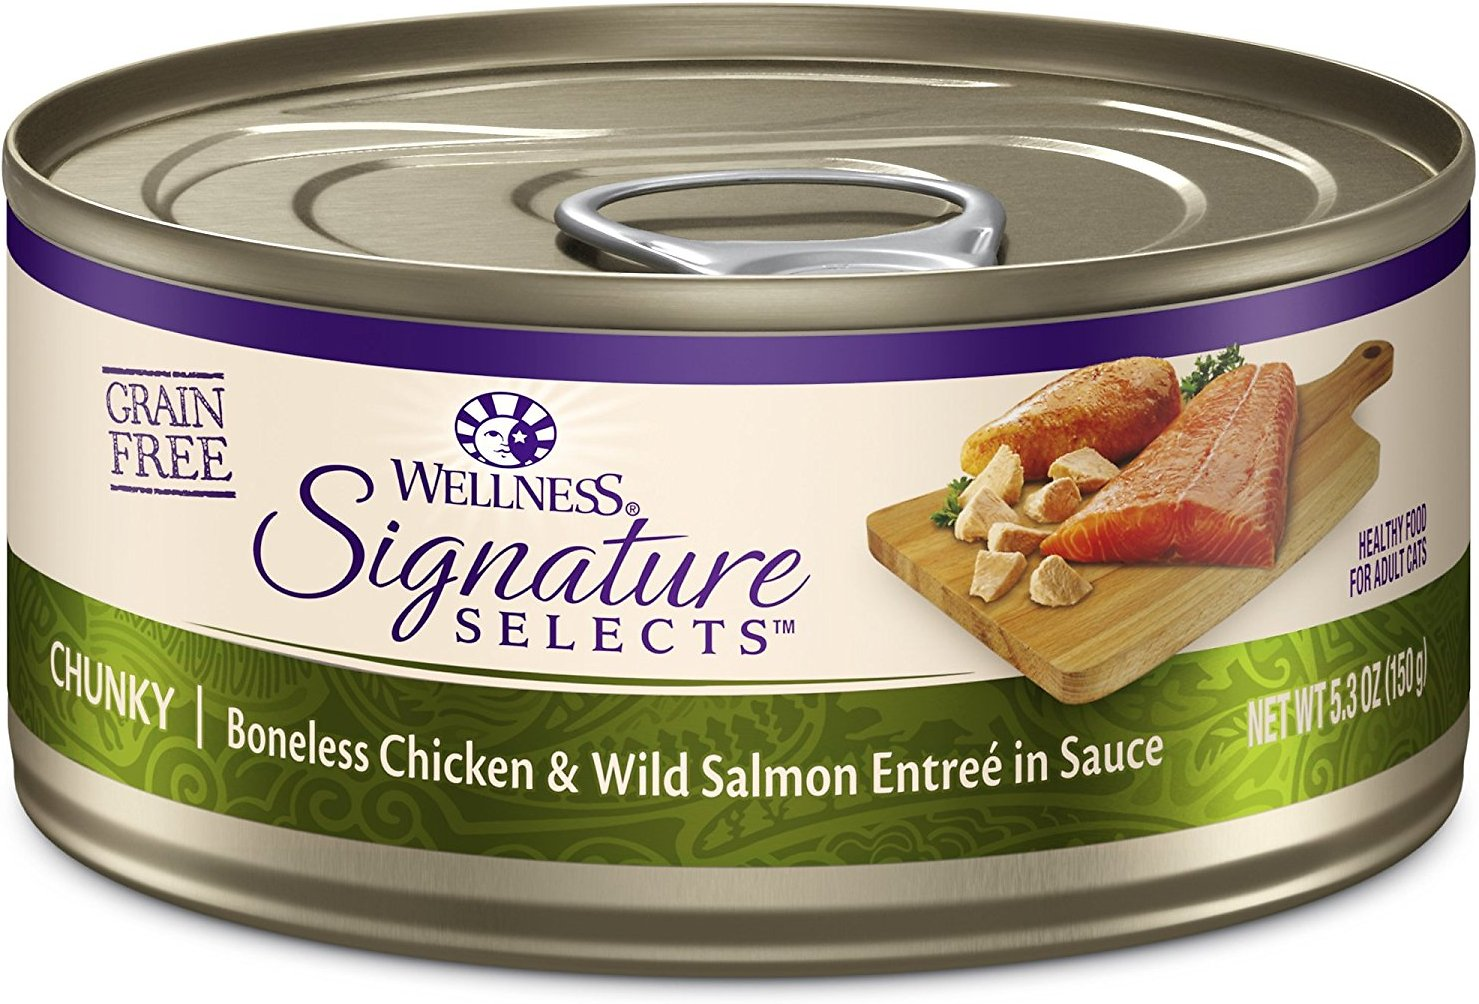 Wellness CORE Signature Selects Chunky Boneless Chicken & Wild Salmon Entree in Sauce Grain-Free Canned Cat Food, 5.3-oz